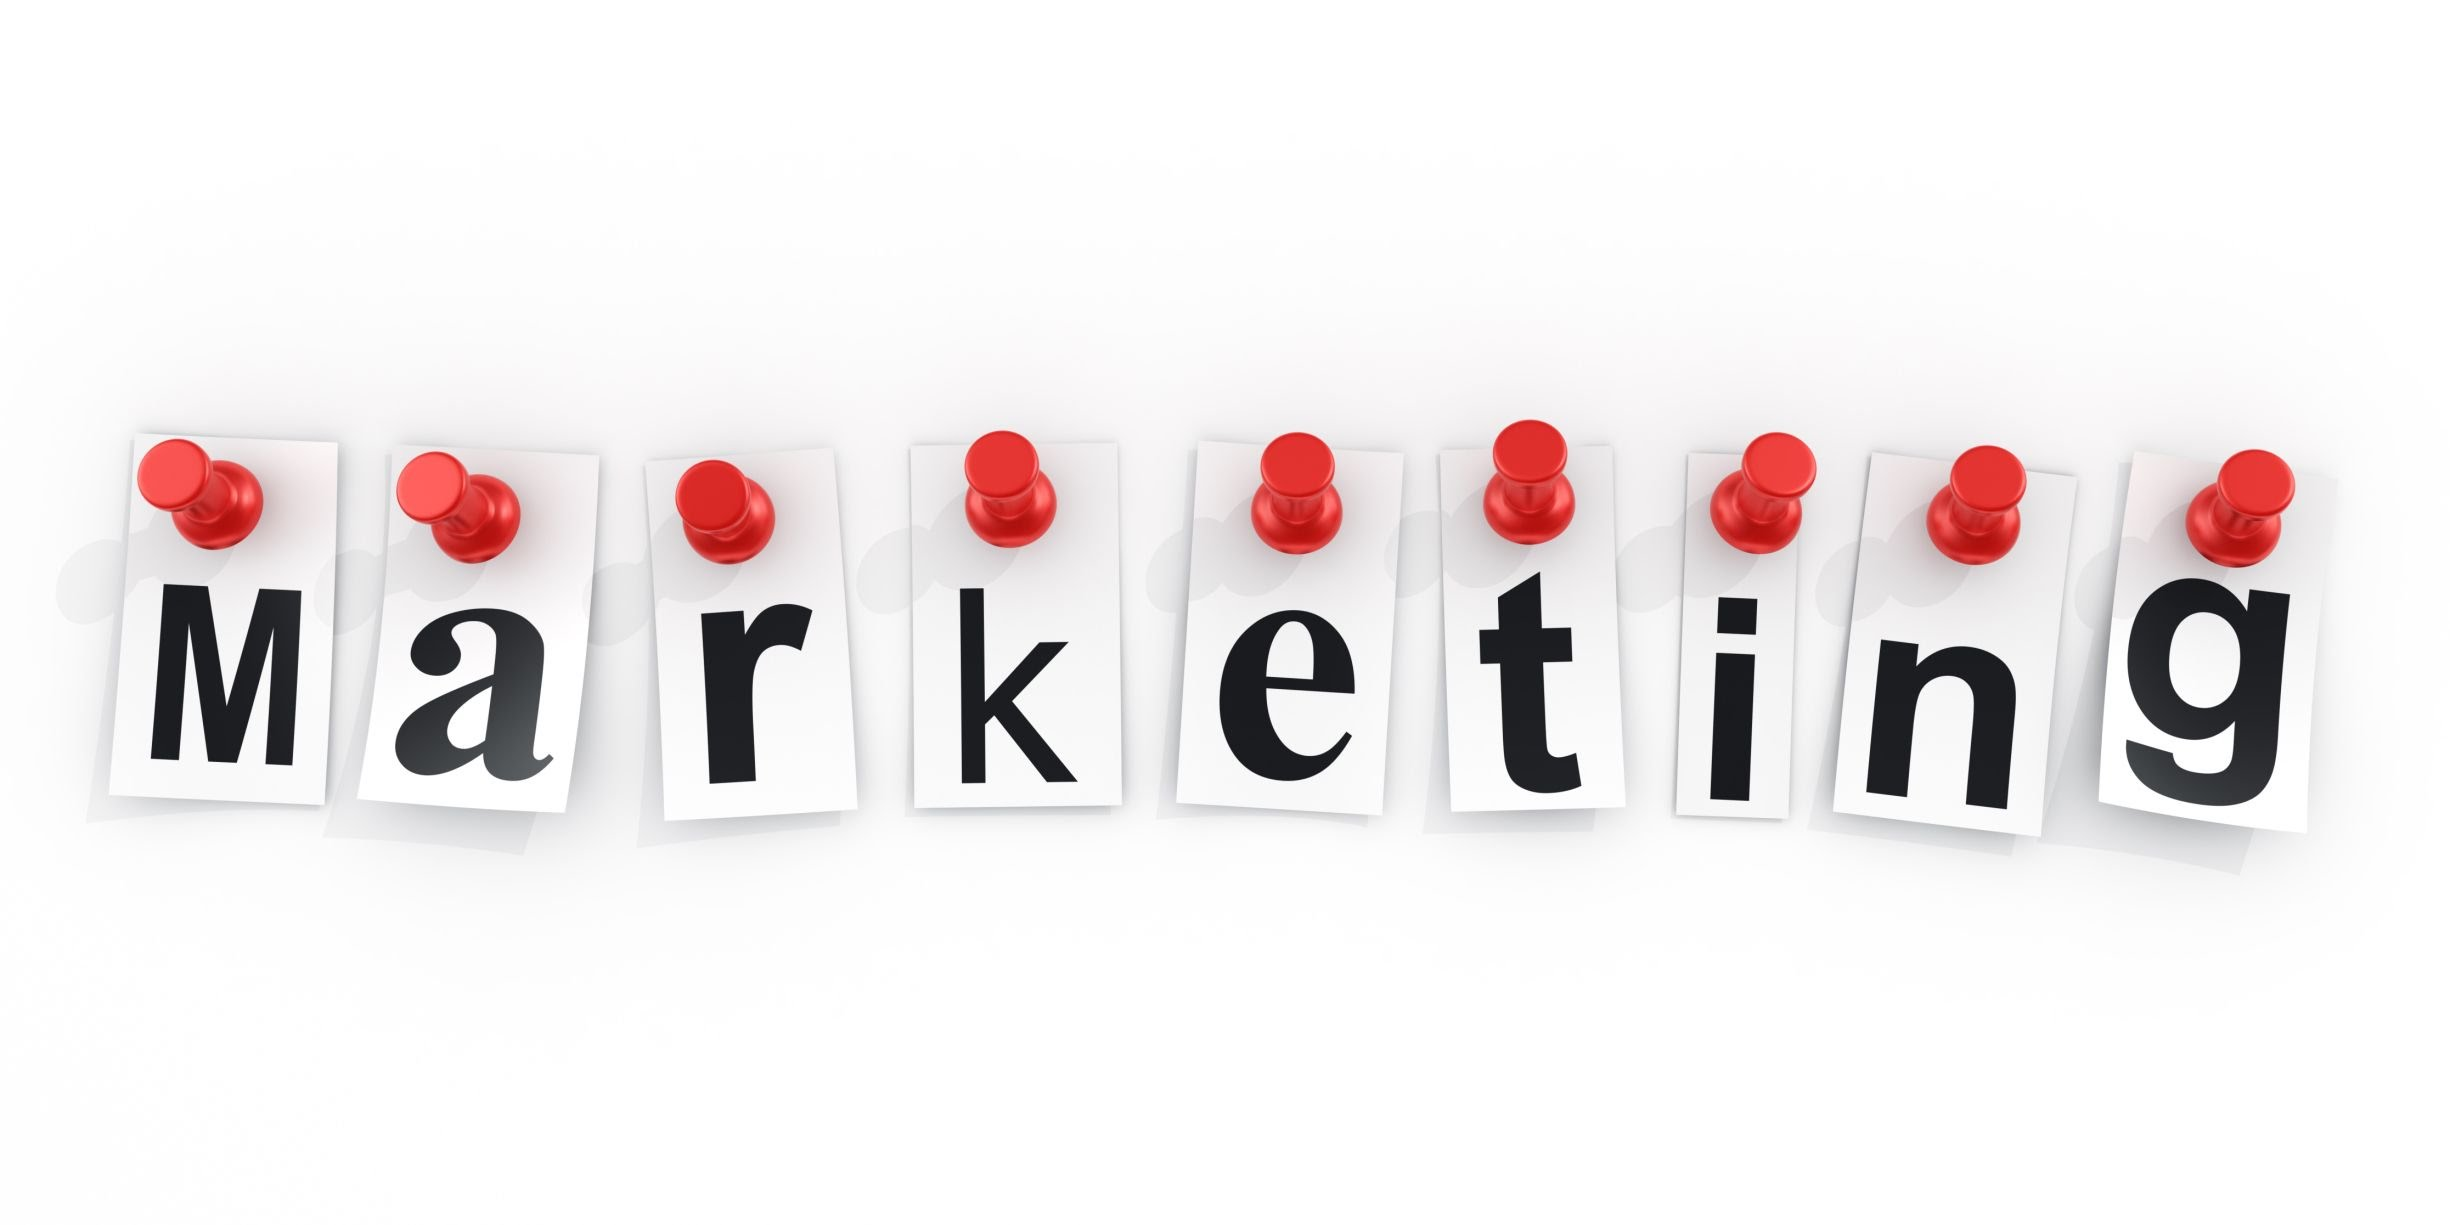 Need to establish a marketing plan? You first need to establish your business goals before you can make marketing goals!